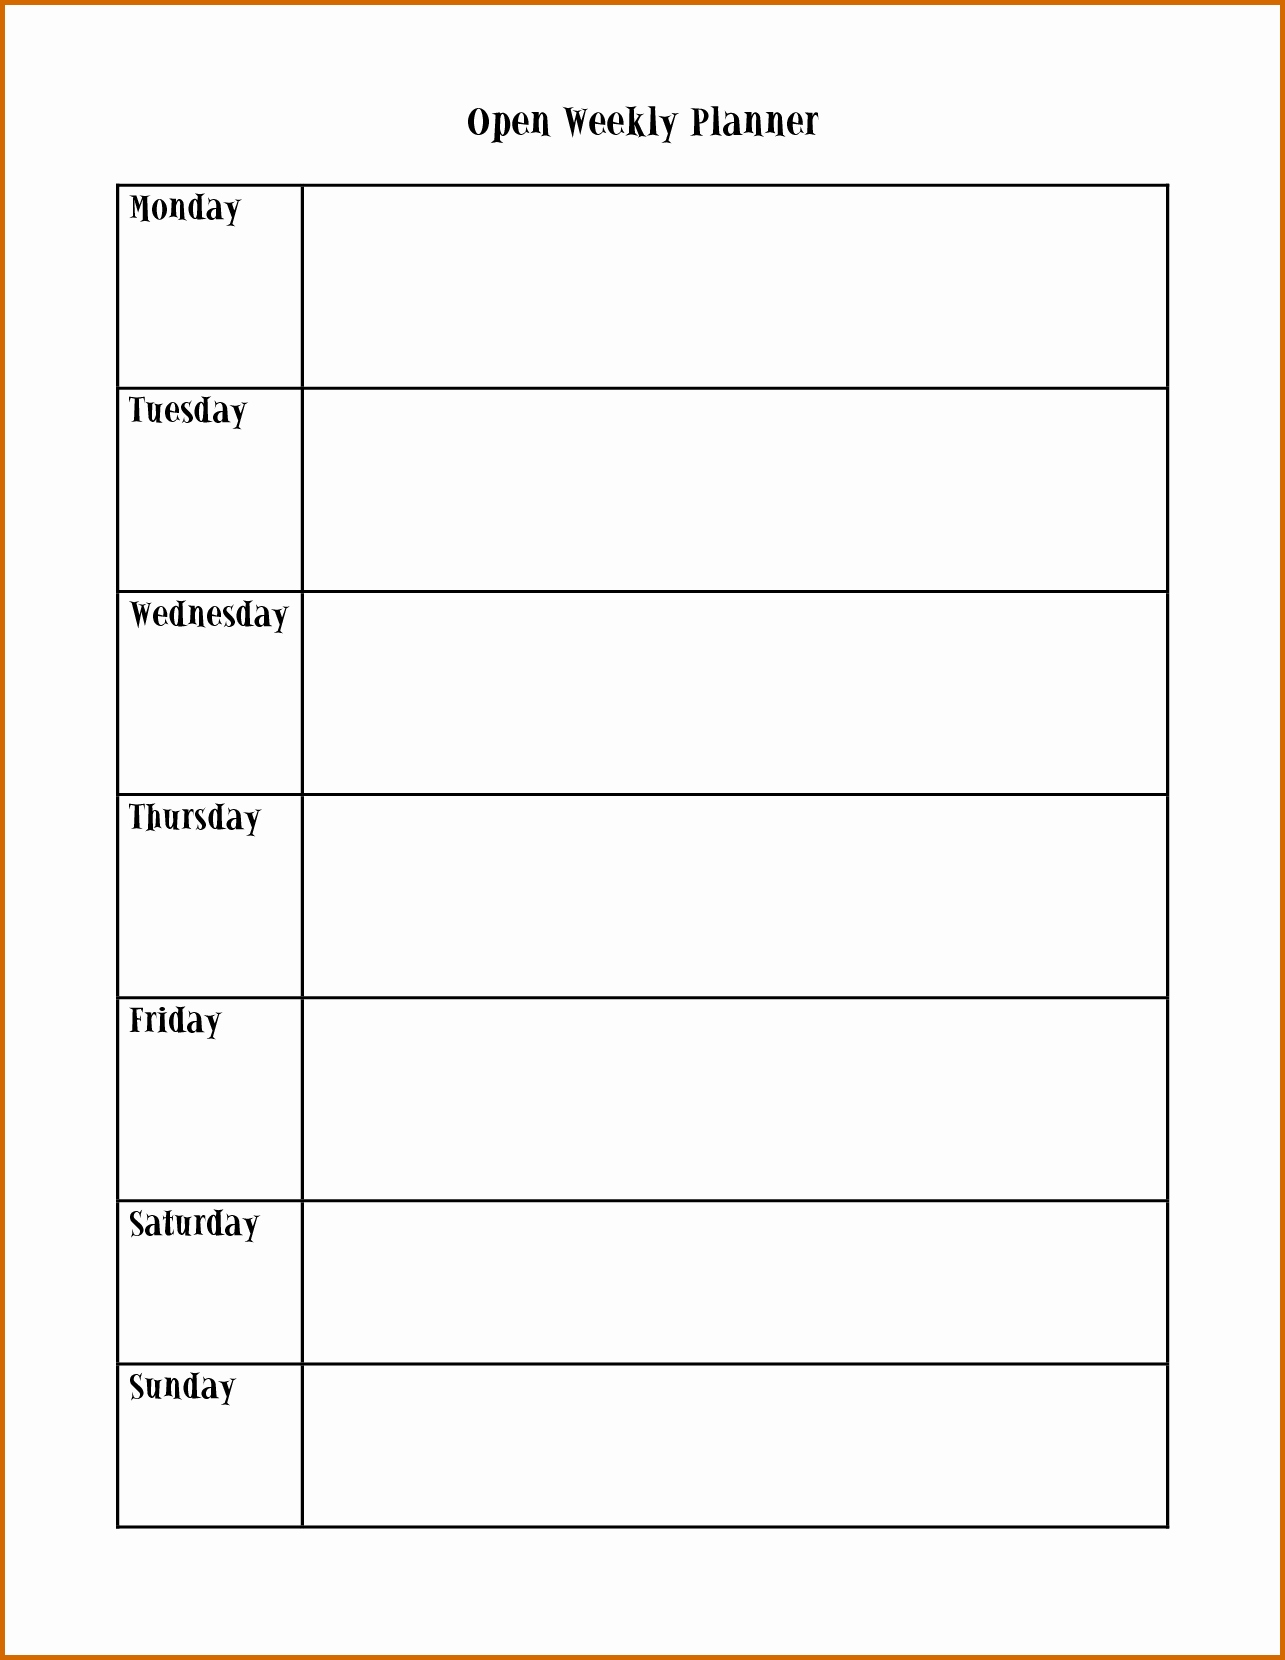 Schedule Plate Monday Through Friday Weekly Calendar Word | Smorad within Monthly Calendars Monday Through Friday